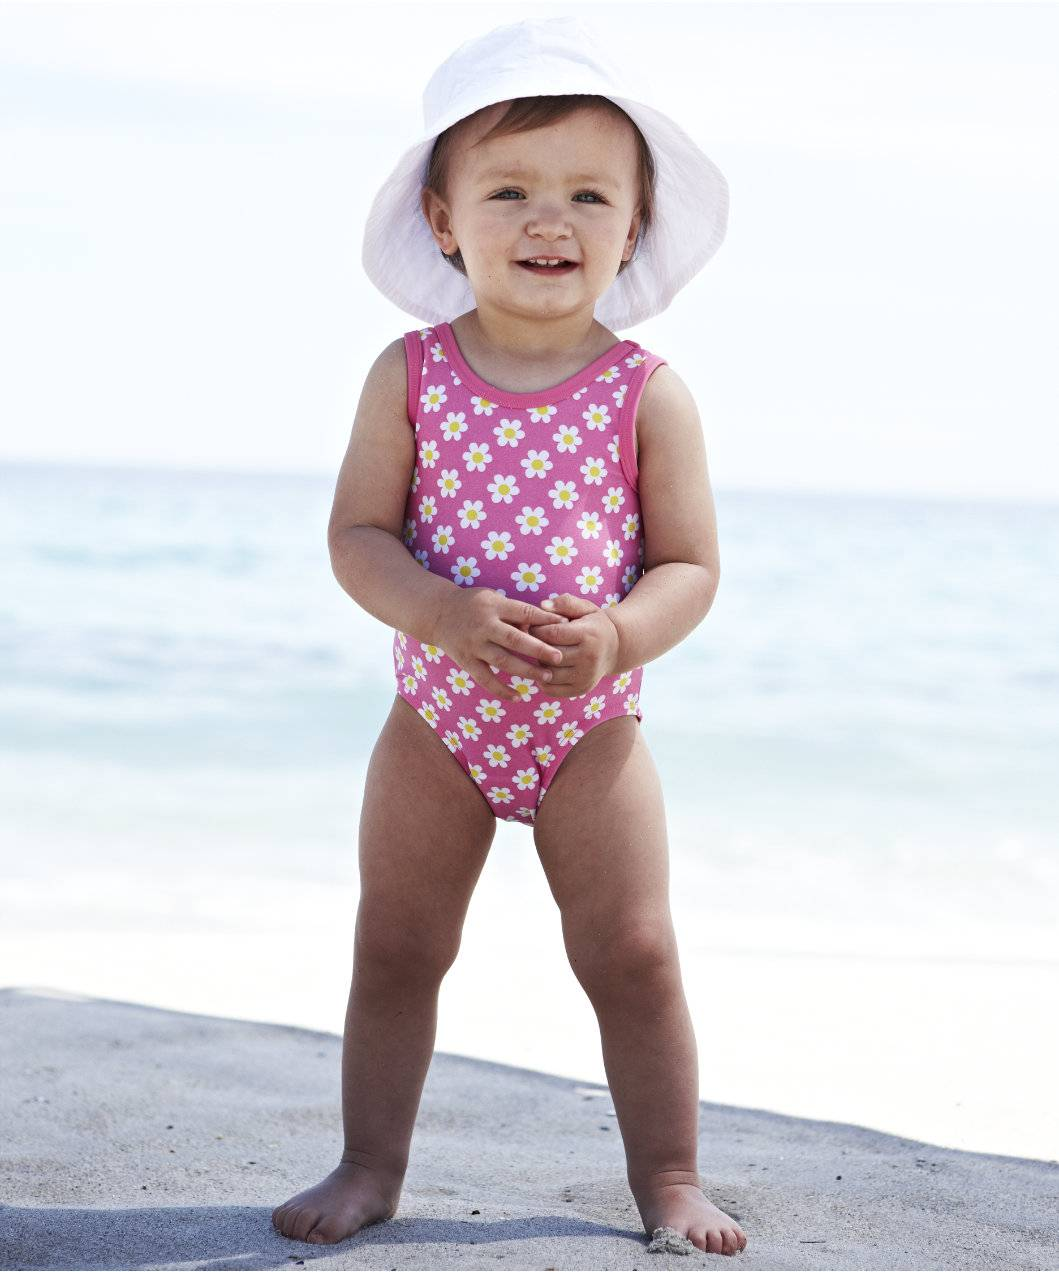 Dress little ones for fun in baby swimwear. Spending the day in the pool or by the lake is a great way for the whole family to have fun. It also gets your baby or toddler used to the water and prepares them to learn to swim when they're older.